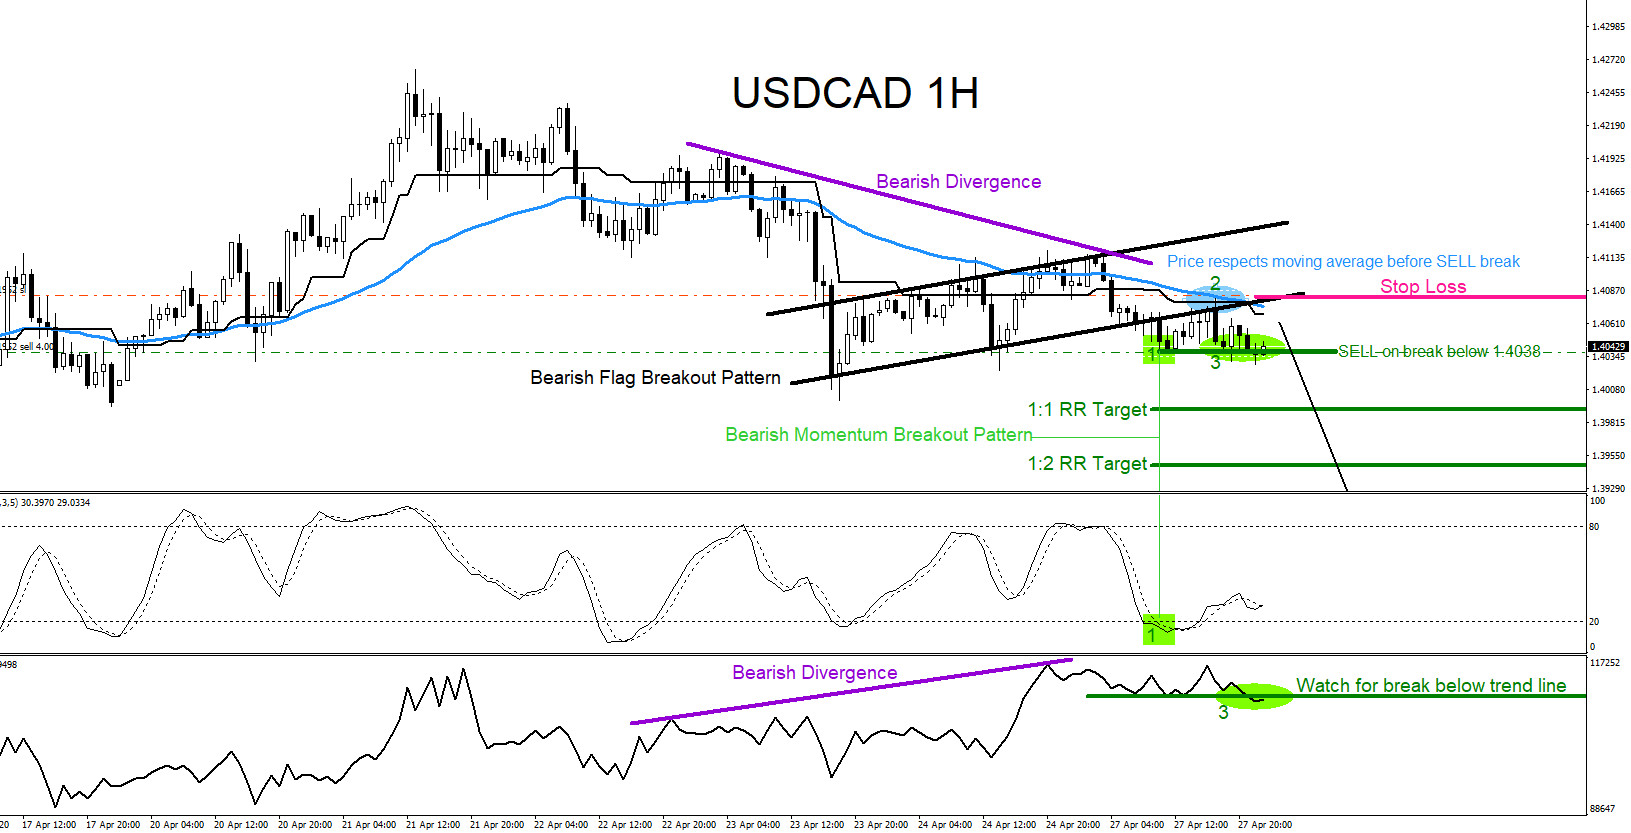 USDCAD : Trading the Breakout Lower